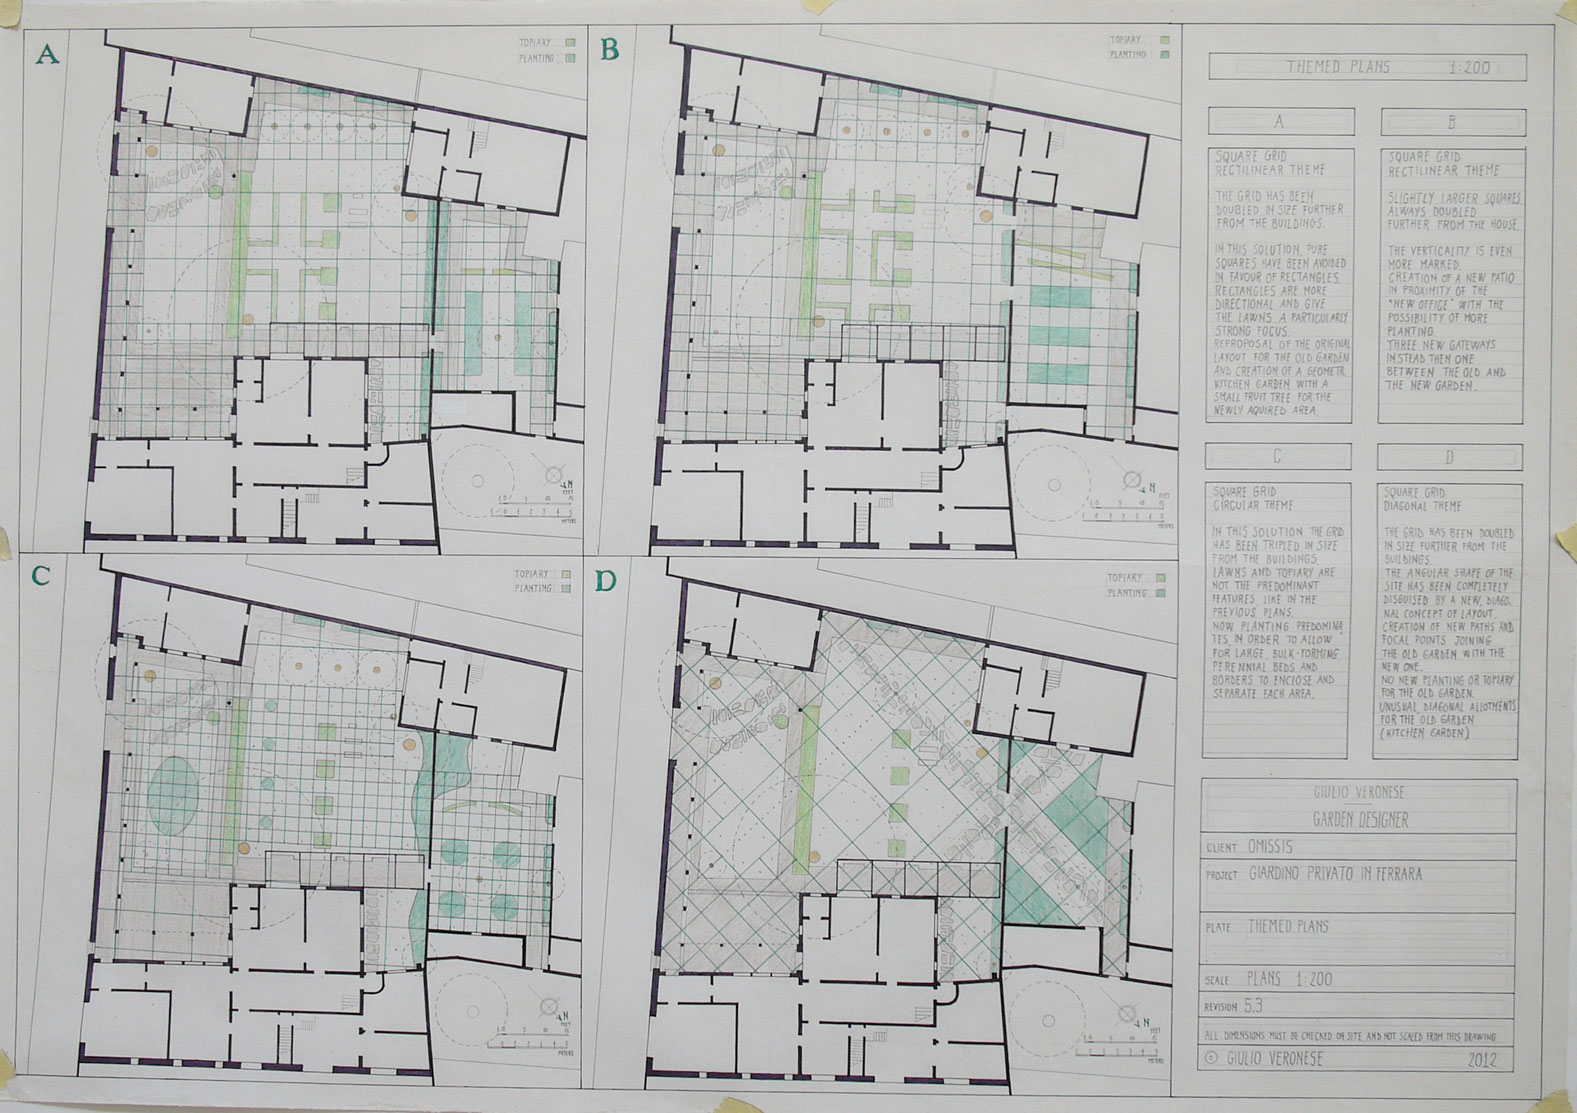 Plate 5 - Themed plans